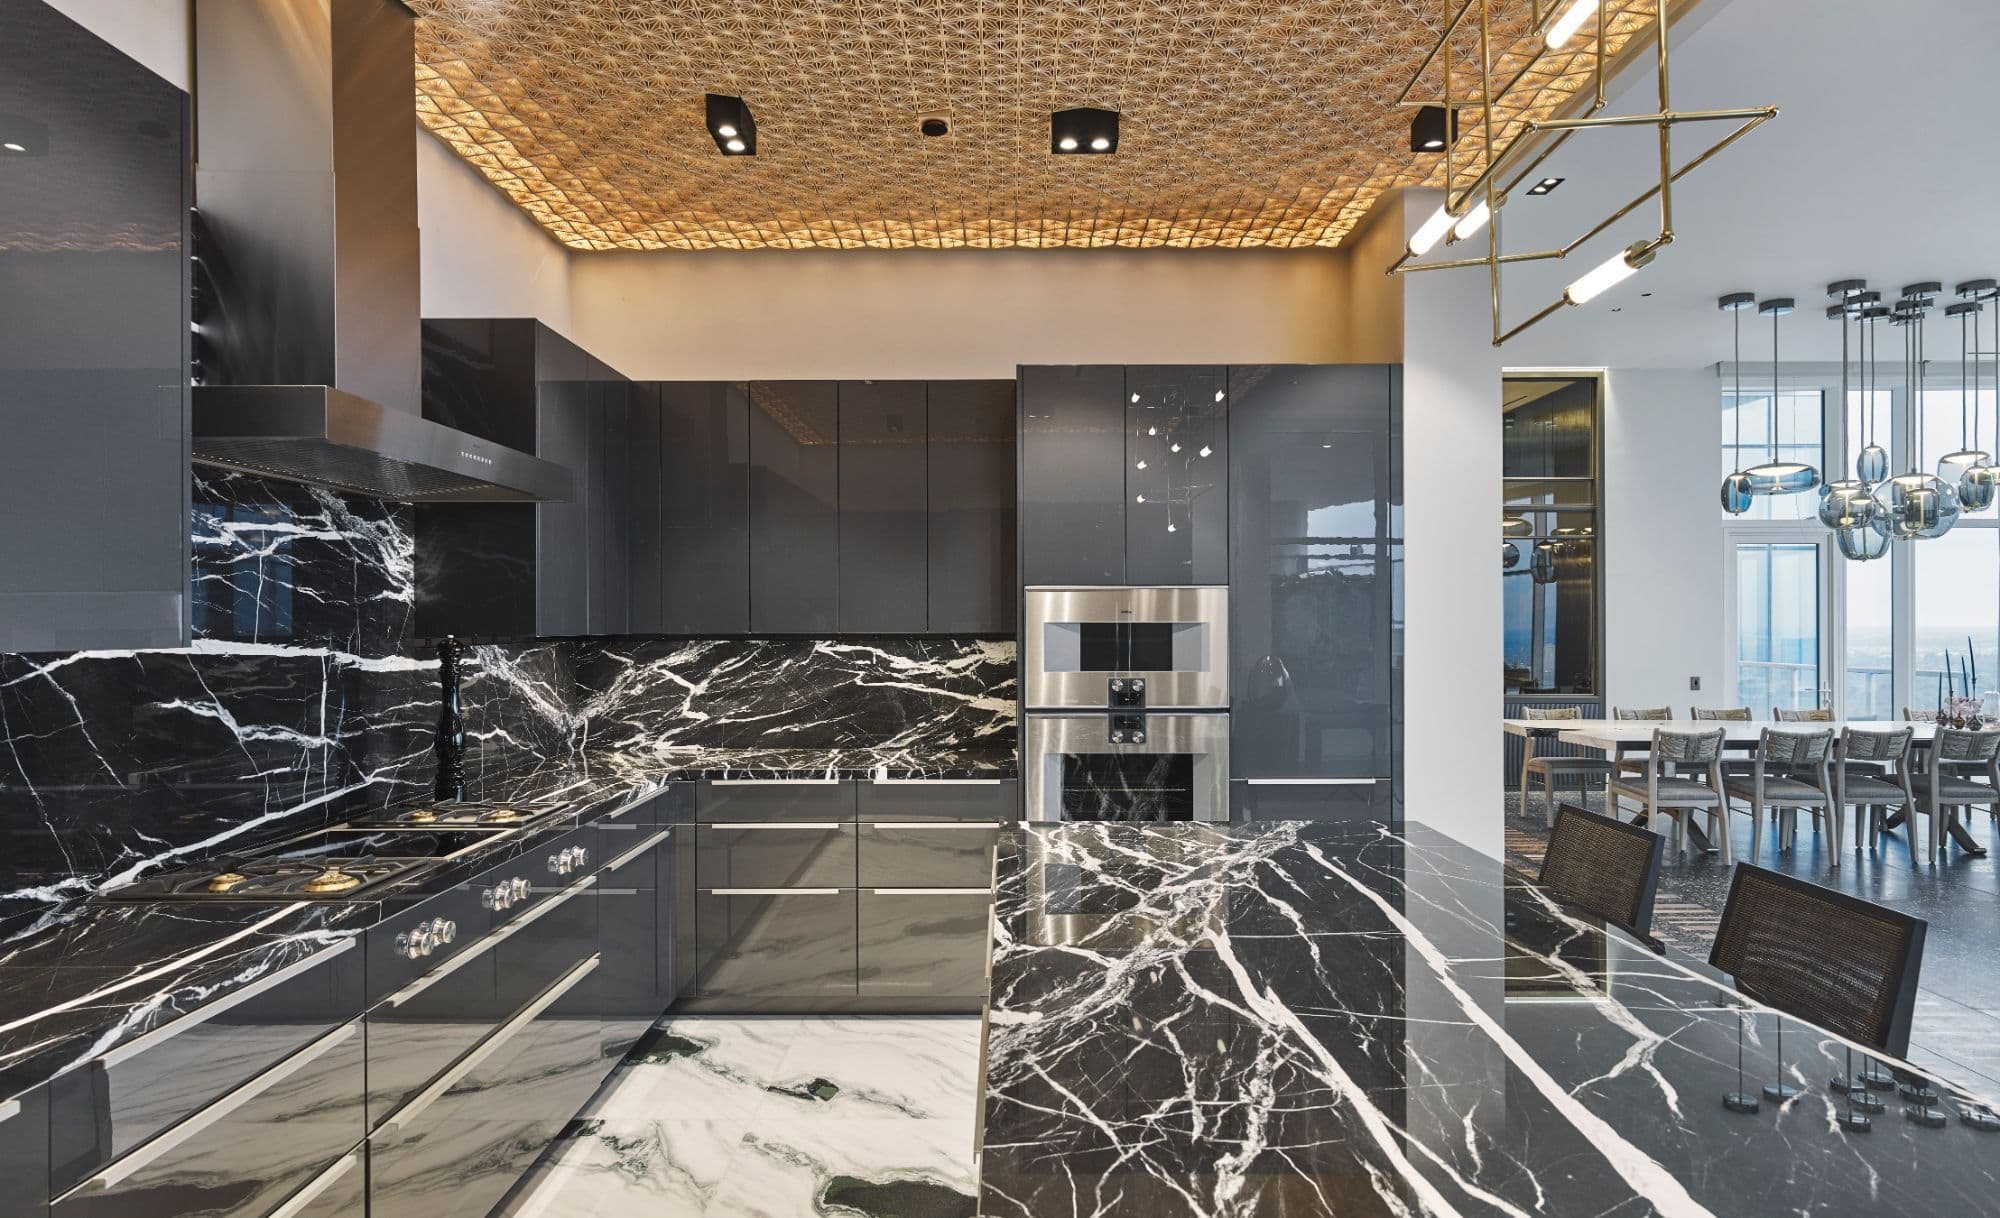 eggersmann kitchen with white-veined black marble and gaggenau appliances inside a penthouse of the arabella luxury high rise in houston